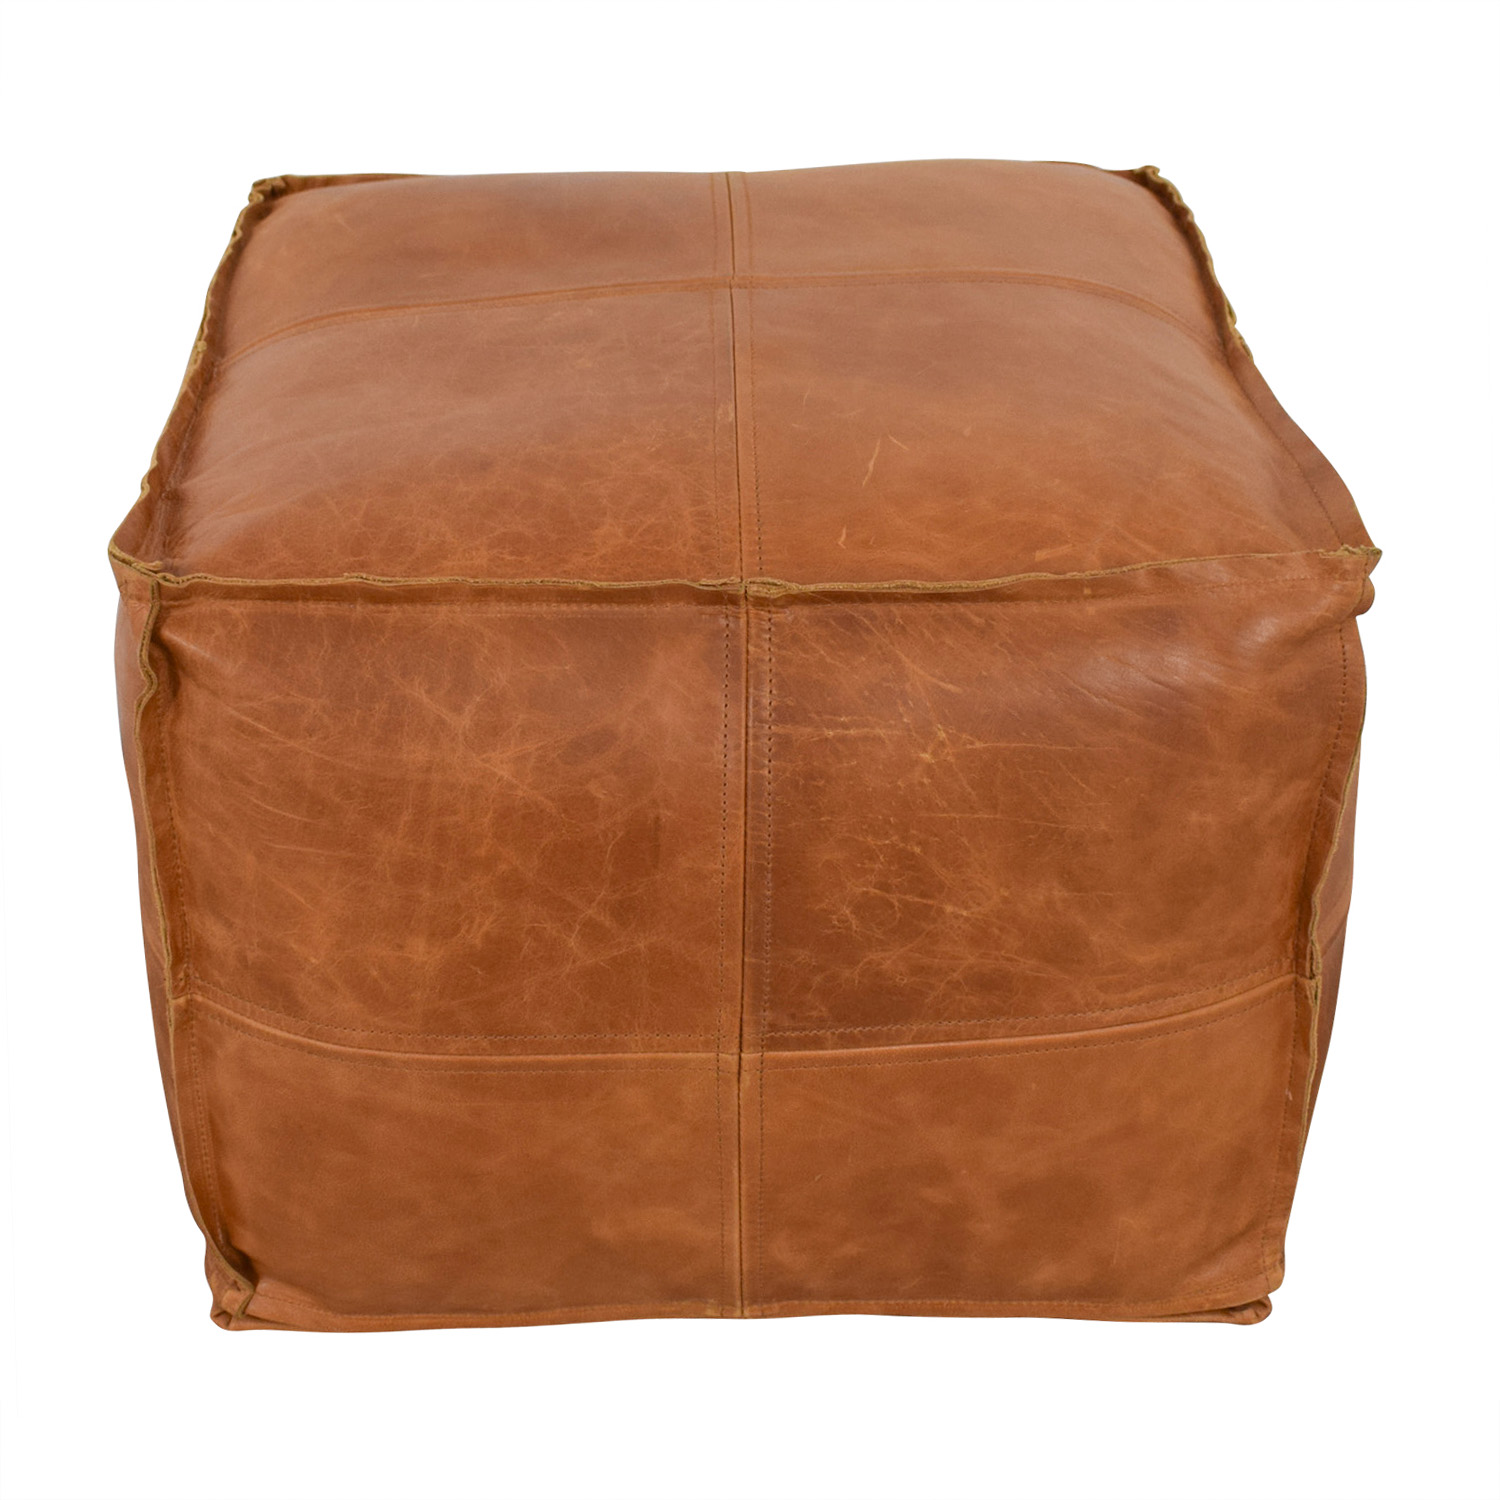 Remarkable 49 Off Cb2 Cb2 Saddle Brown Leather Pouf Chairs Dailytribune Chair Design For Home Dailytribuneorg